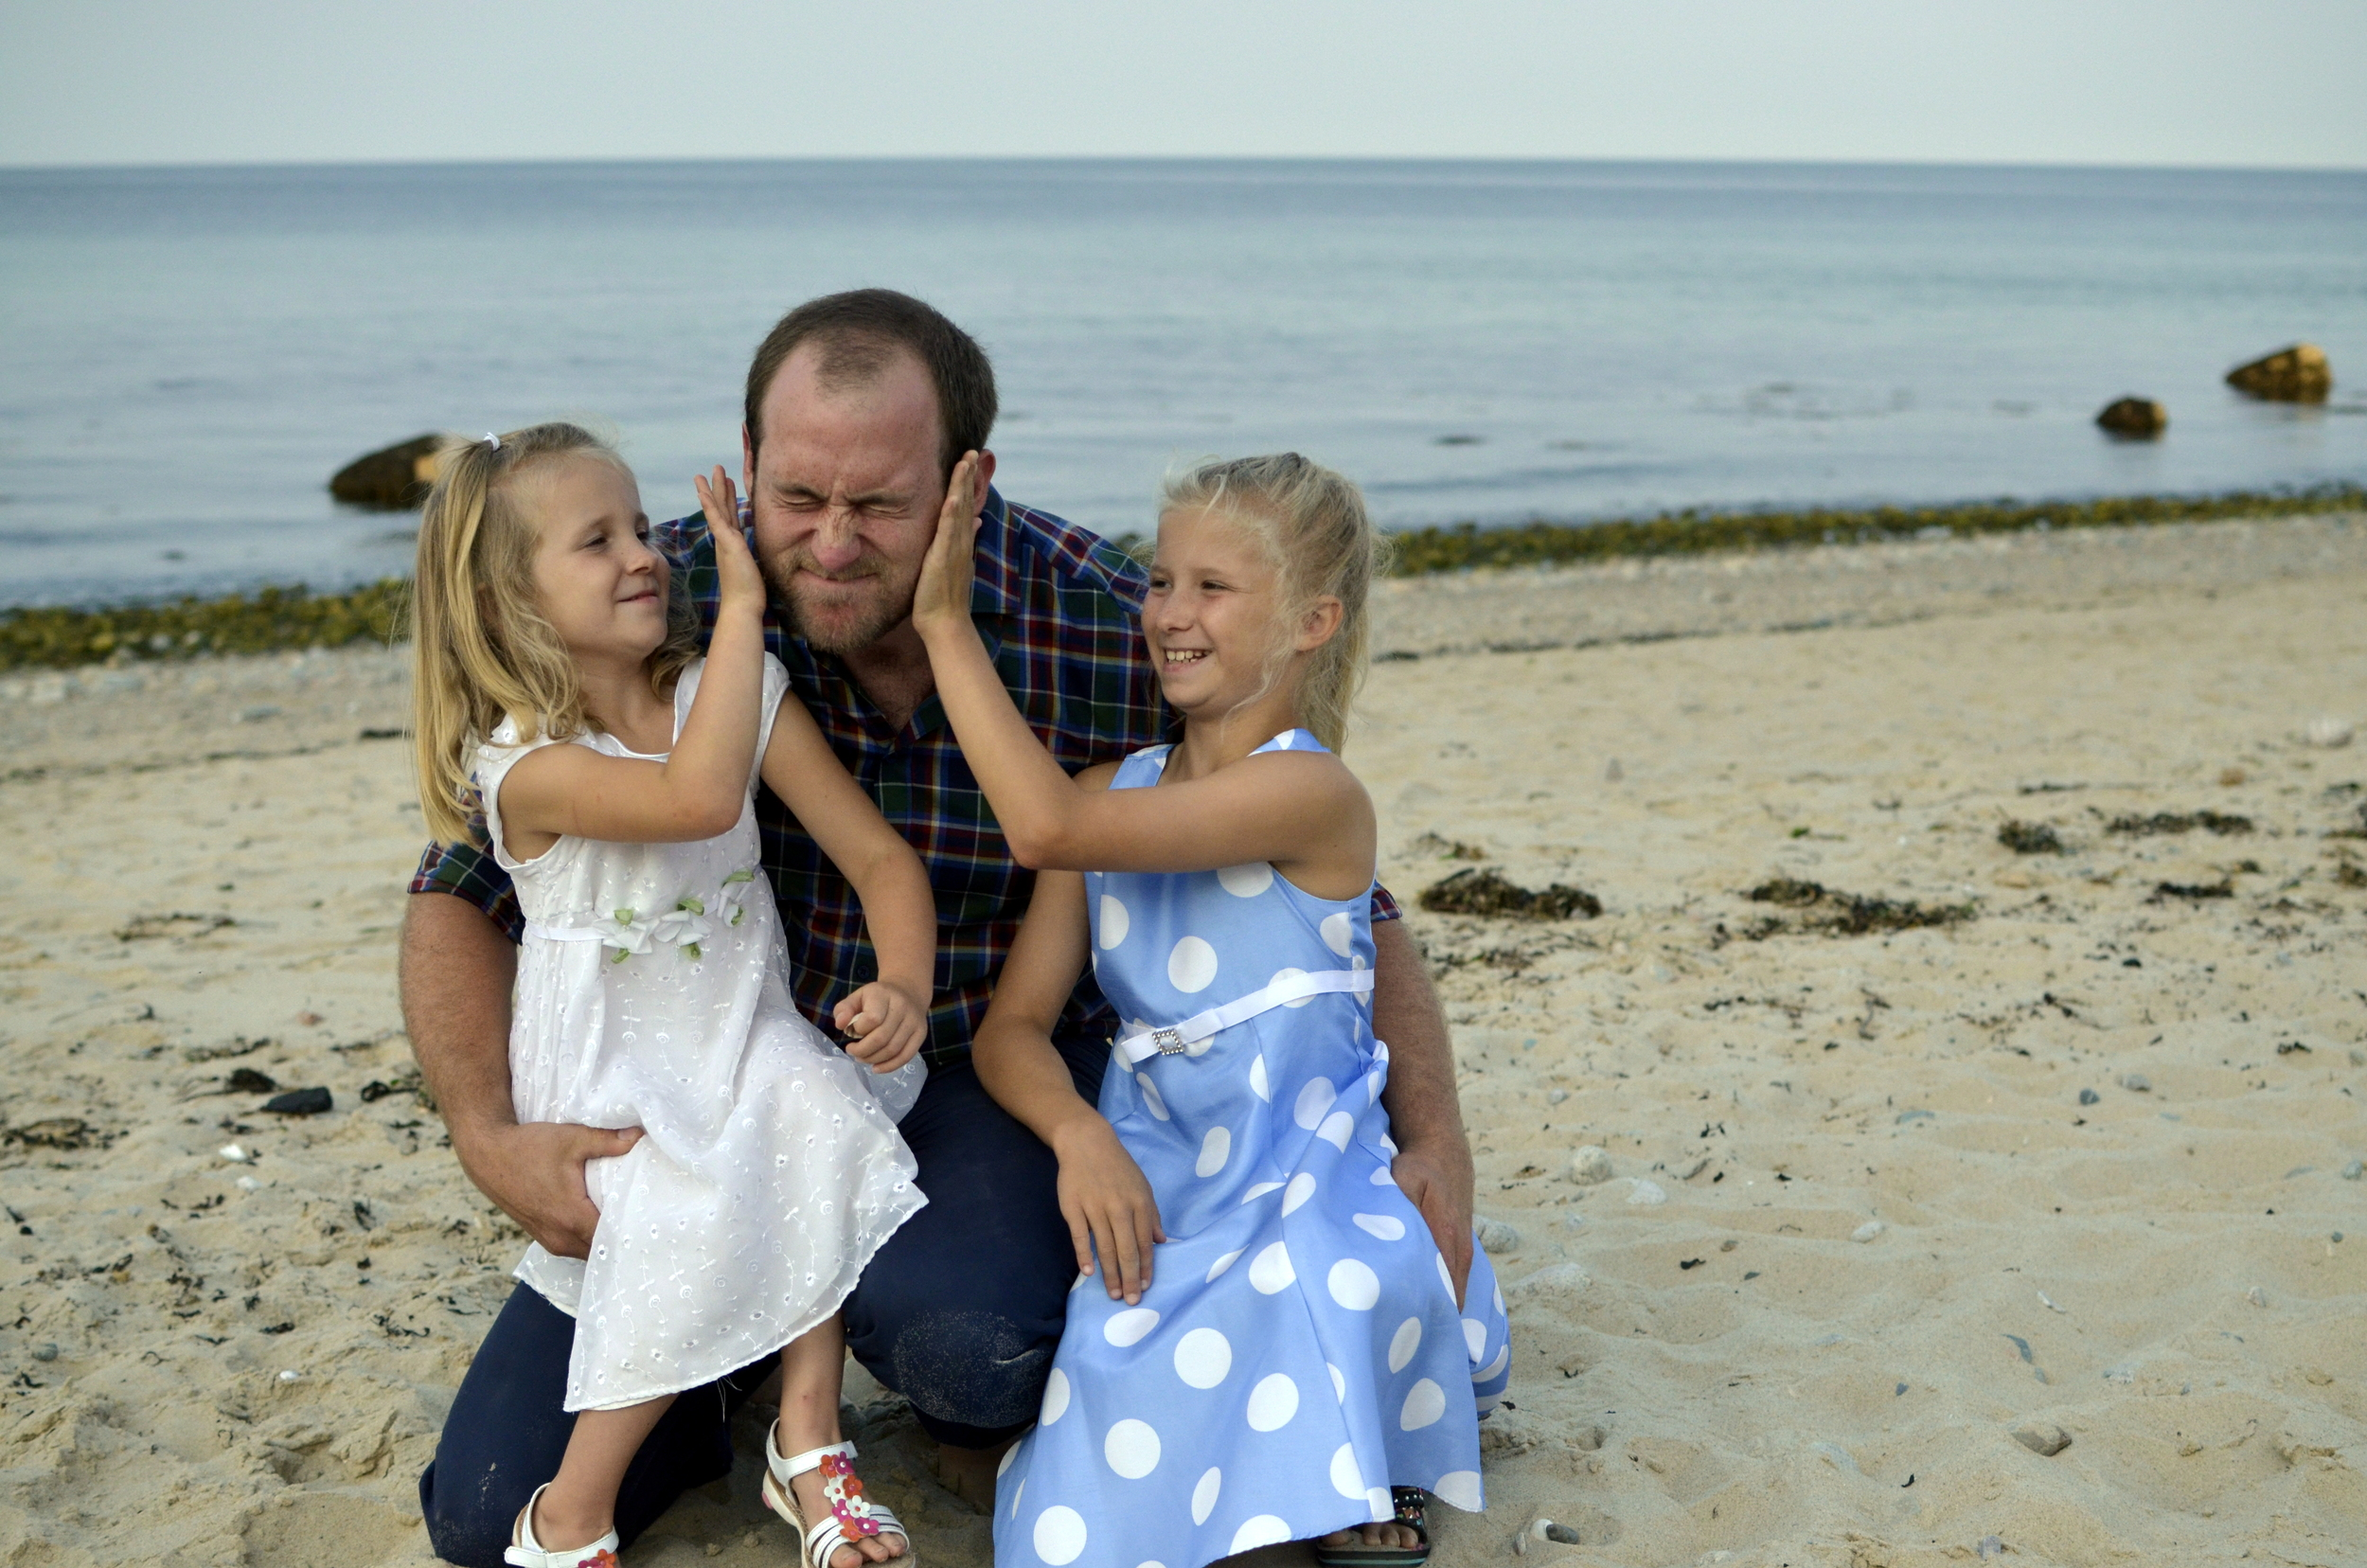 026 Andrew with the Girls 2.jpg